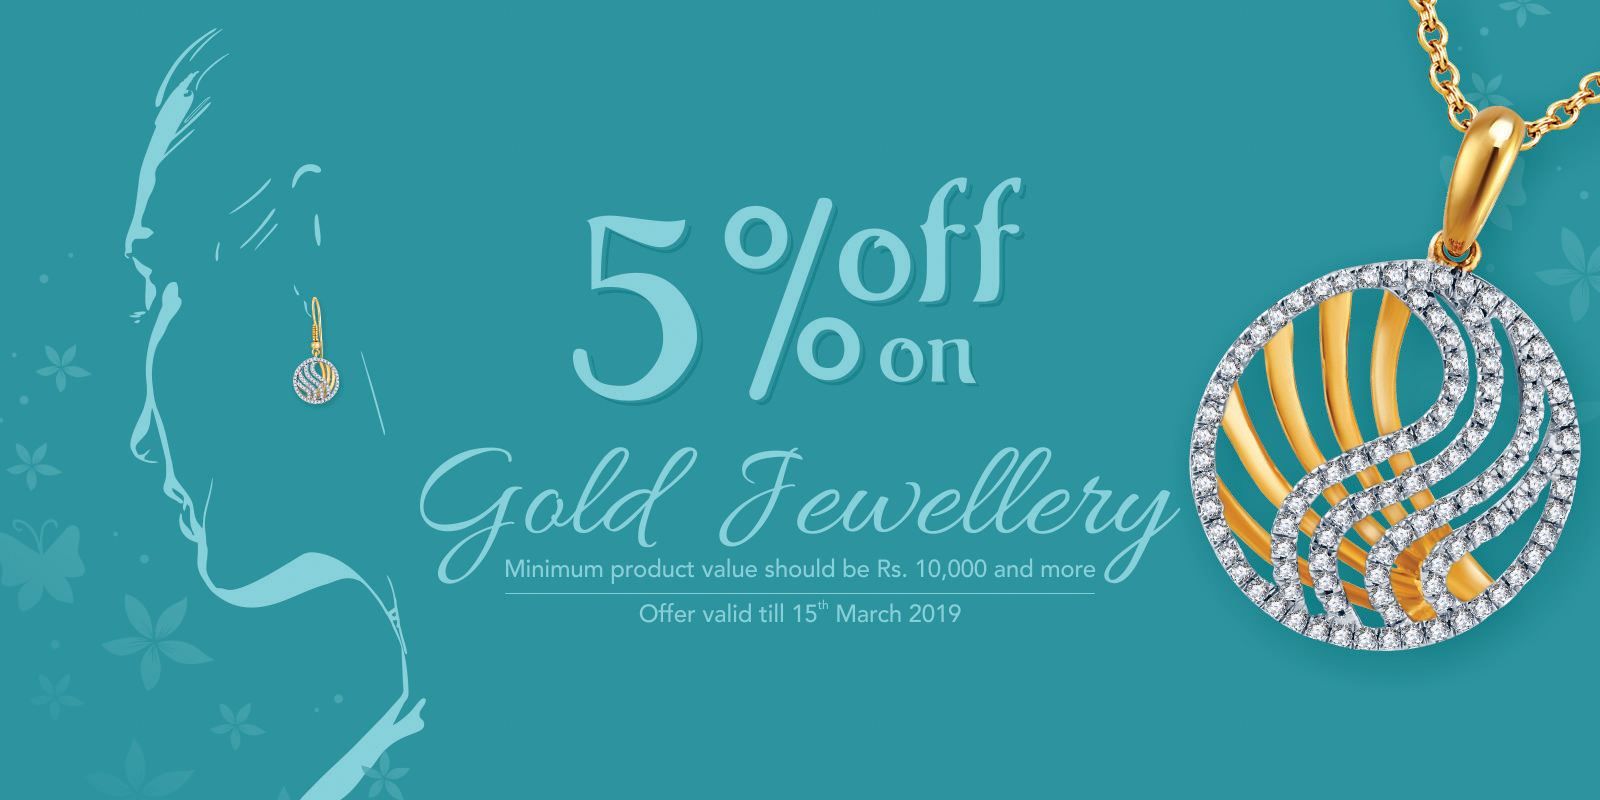 5% off on Gold Jewellery